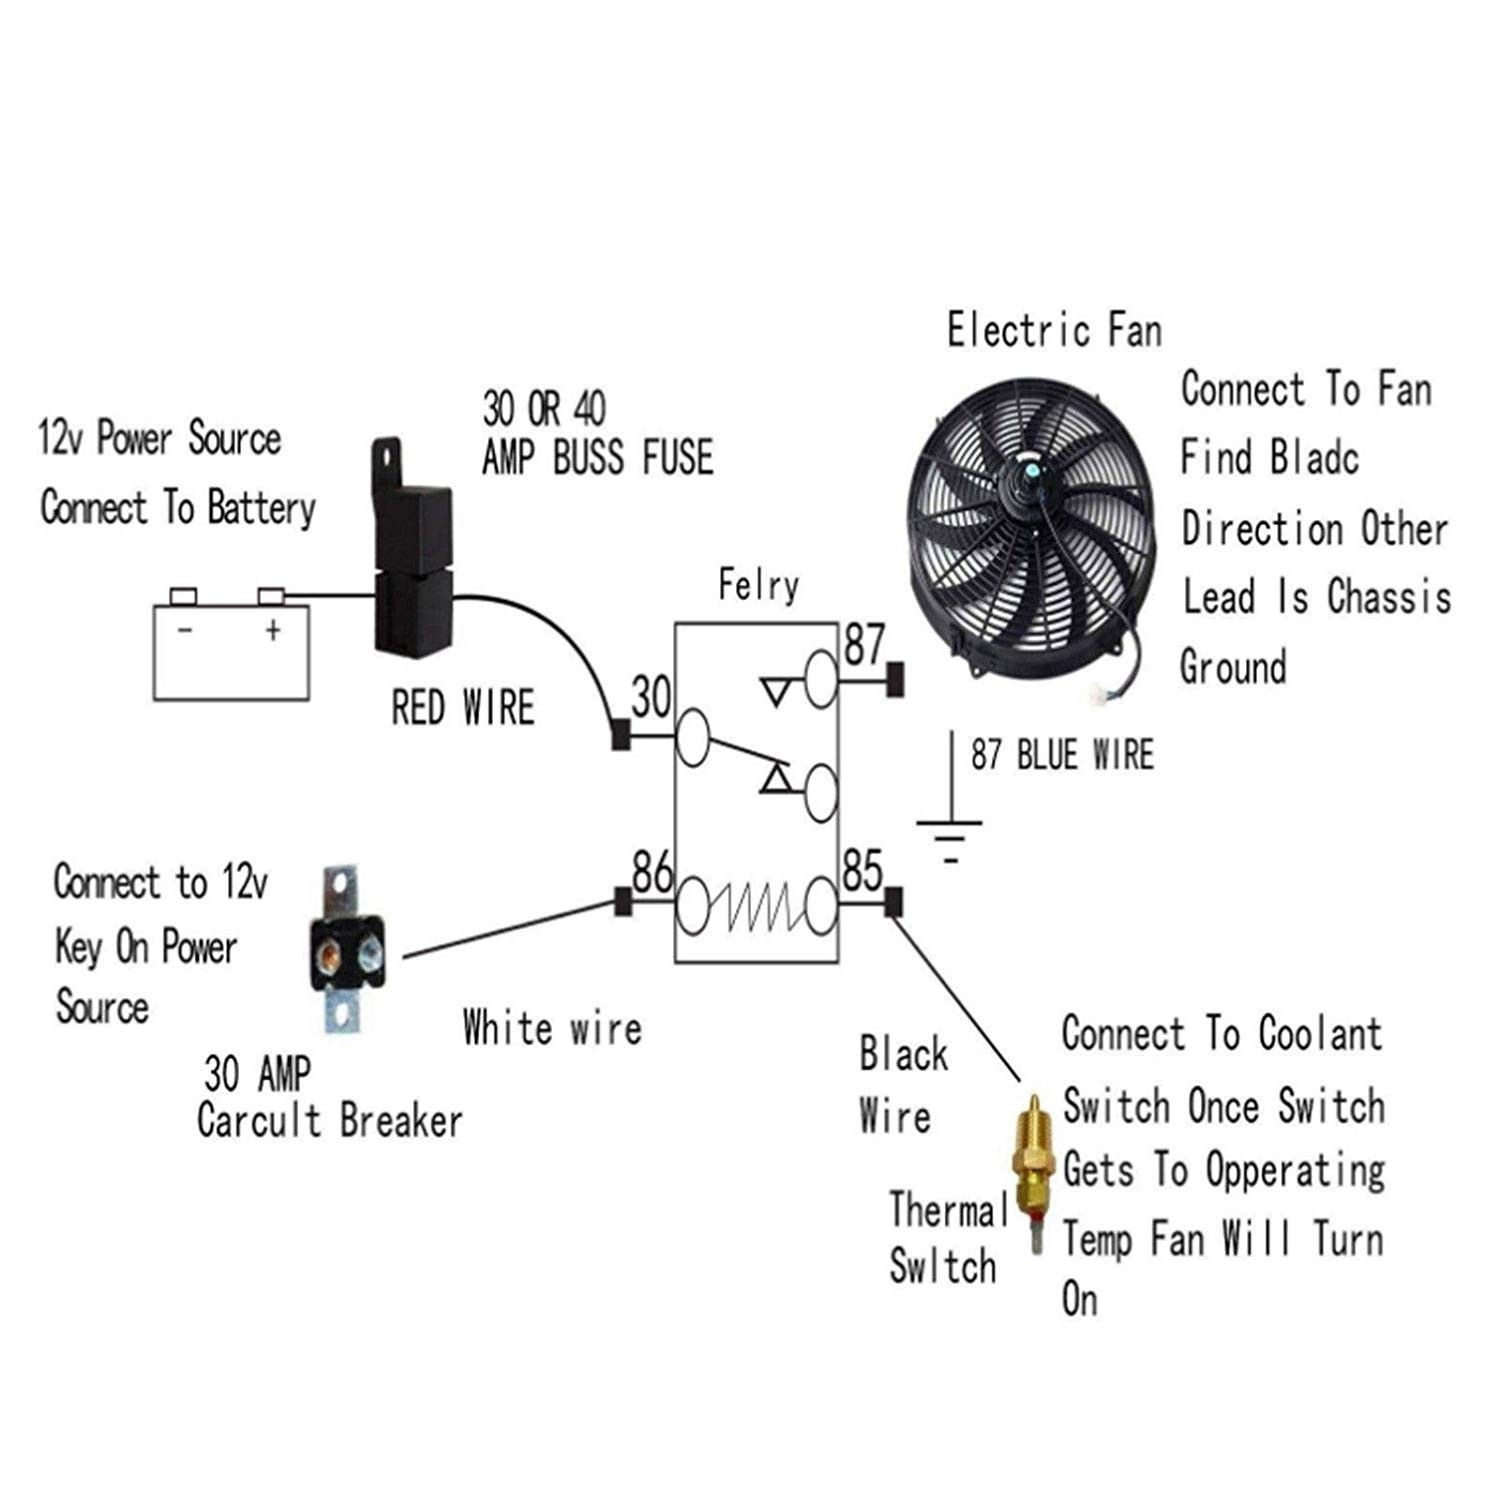 Wiring Harness For Electric Fans